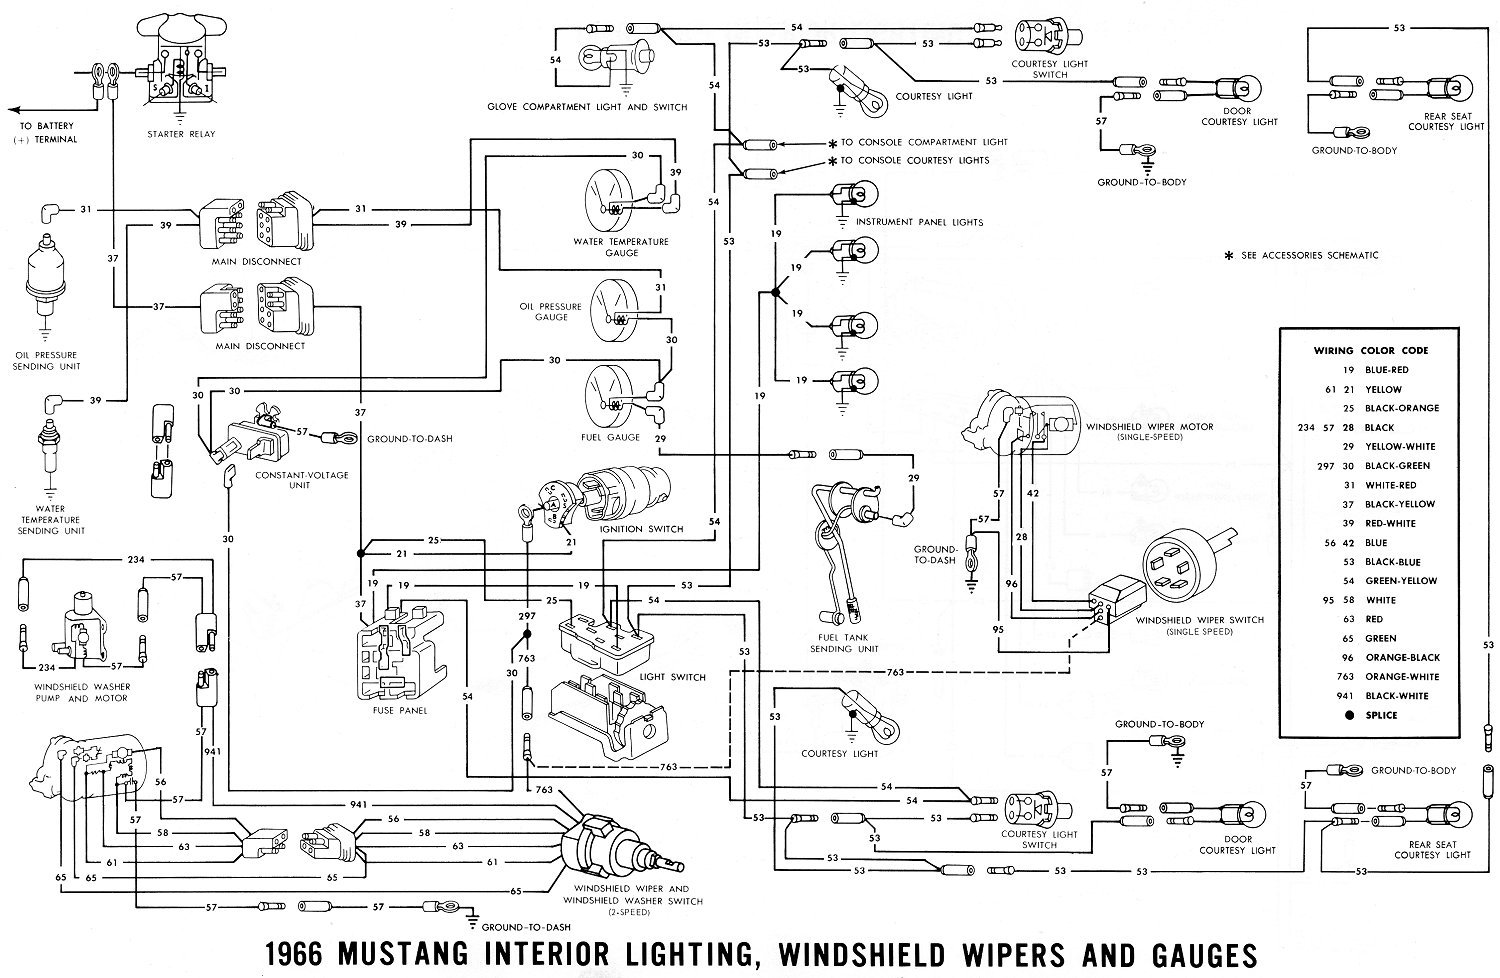 Tired of    Wiring    Another Constant Voltage Regulator Question  Ford    Mustang    Forum